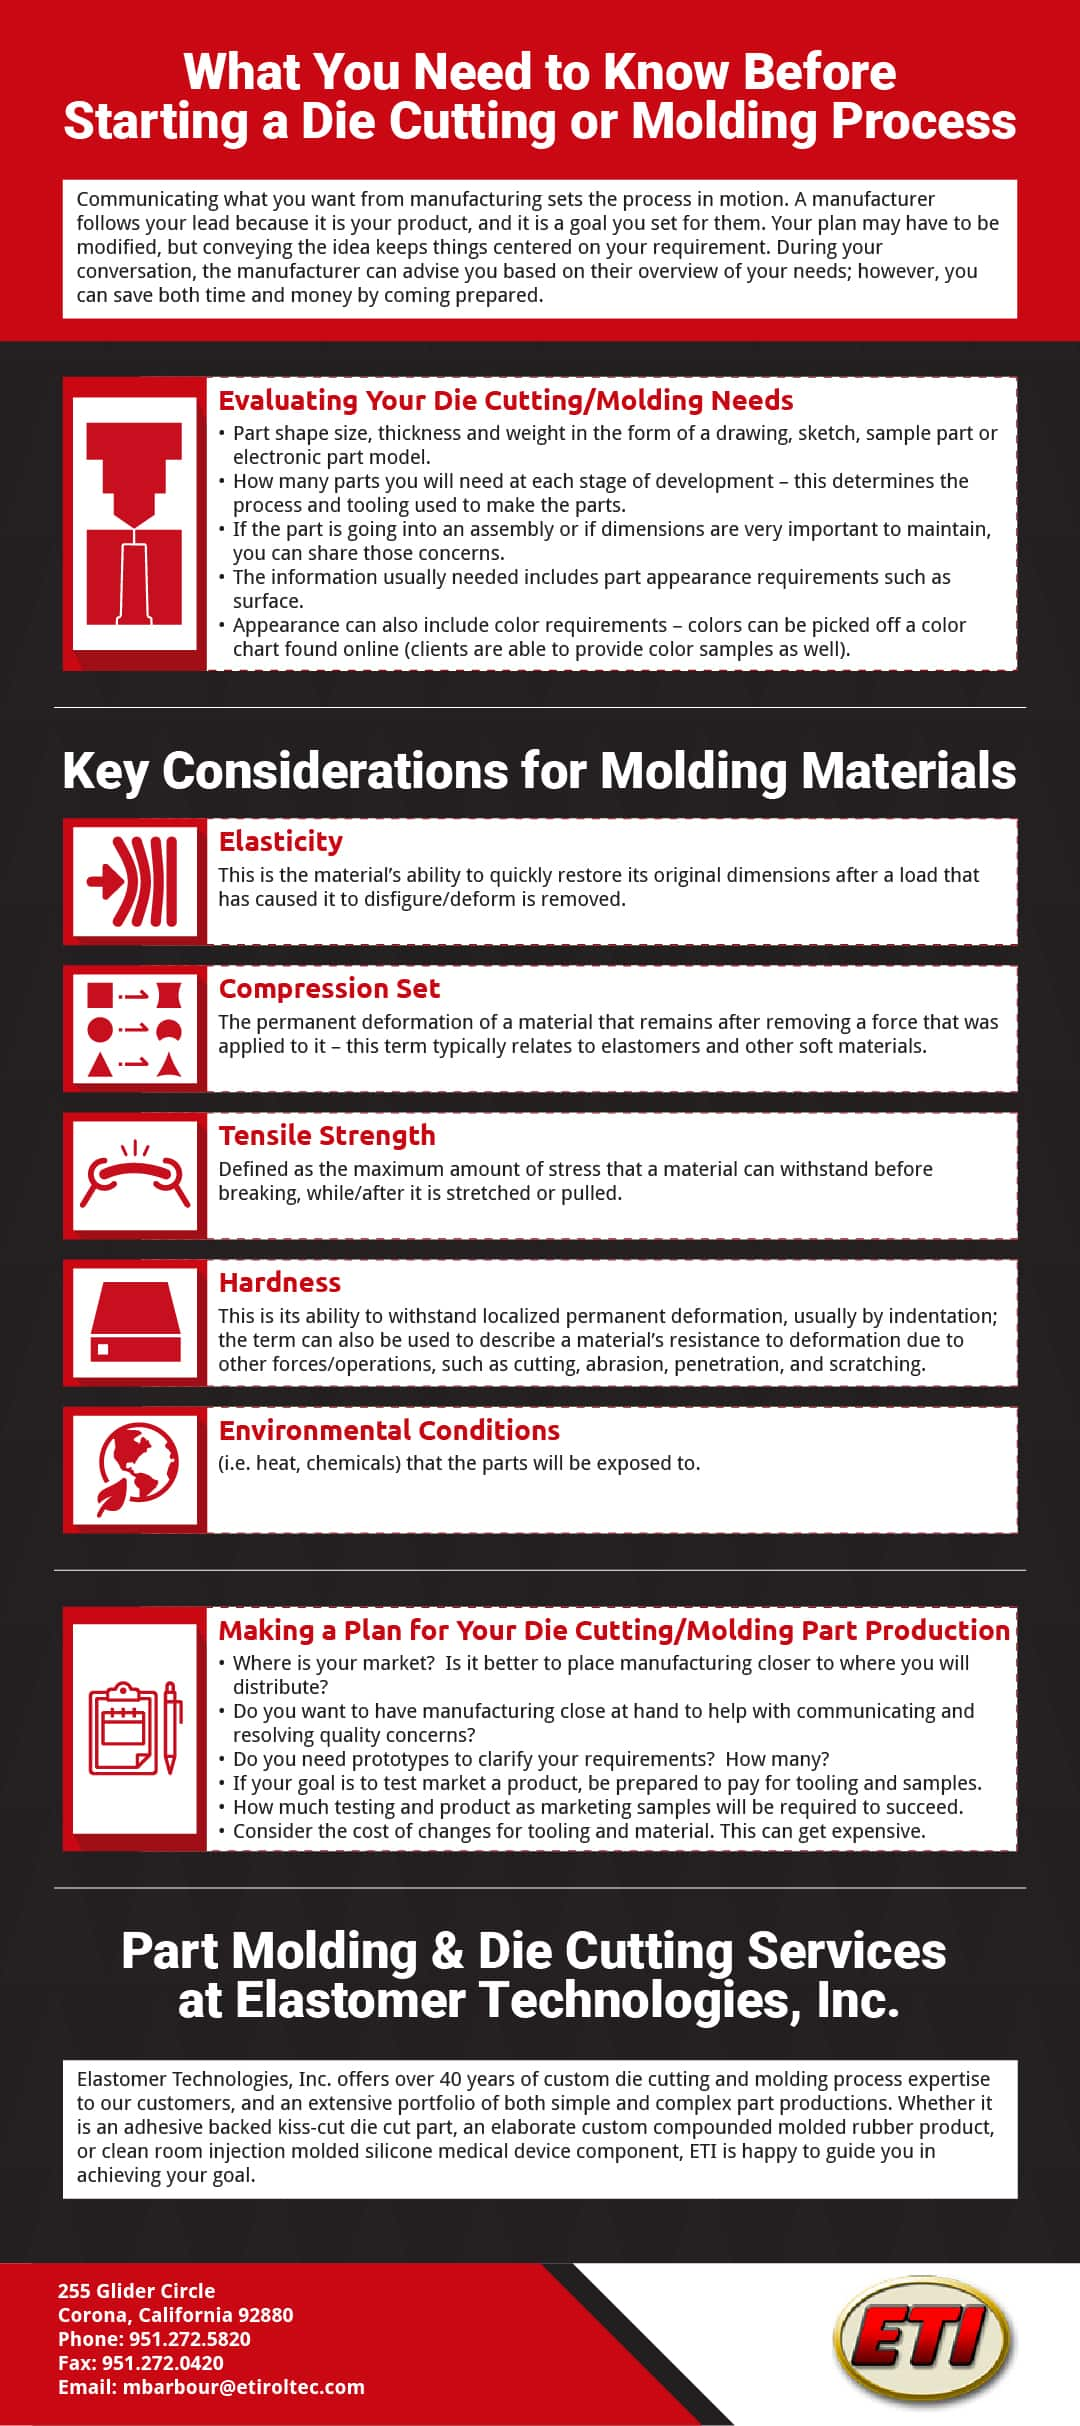 What You Need to Know Before Starting a Die Cutting or Molding Process